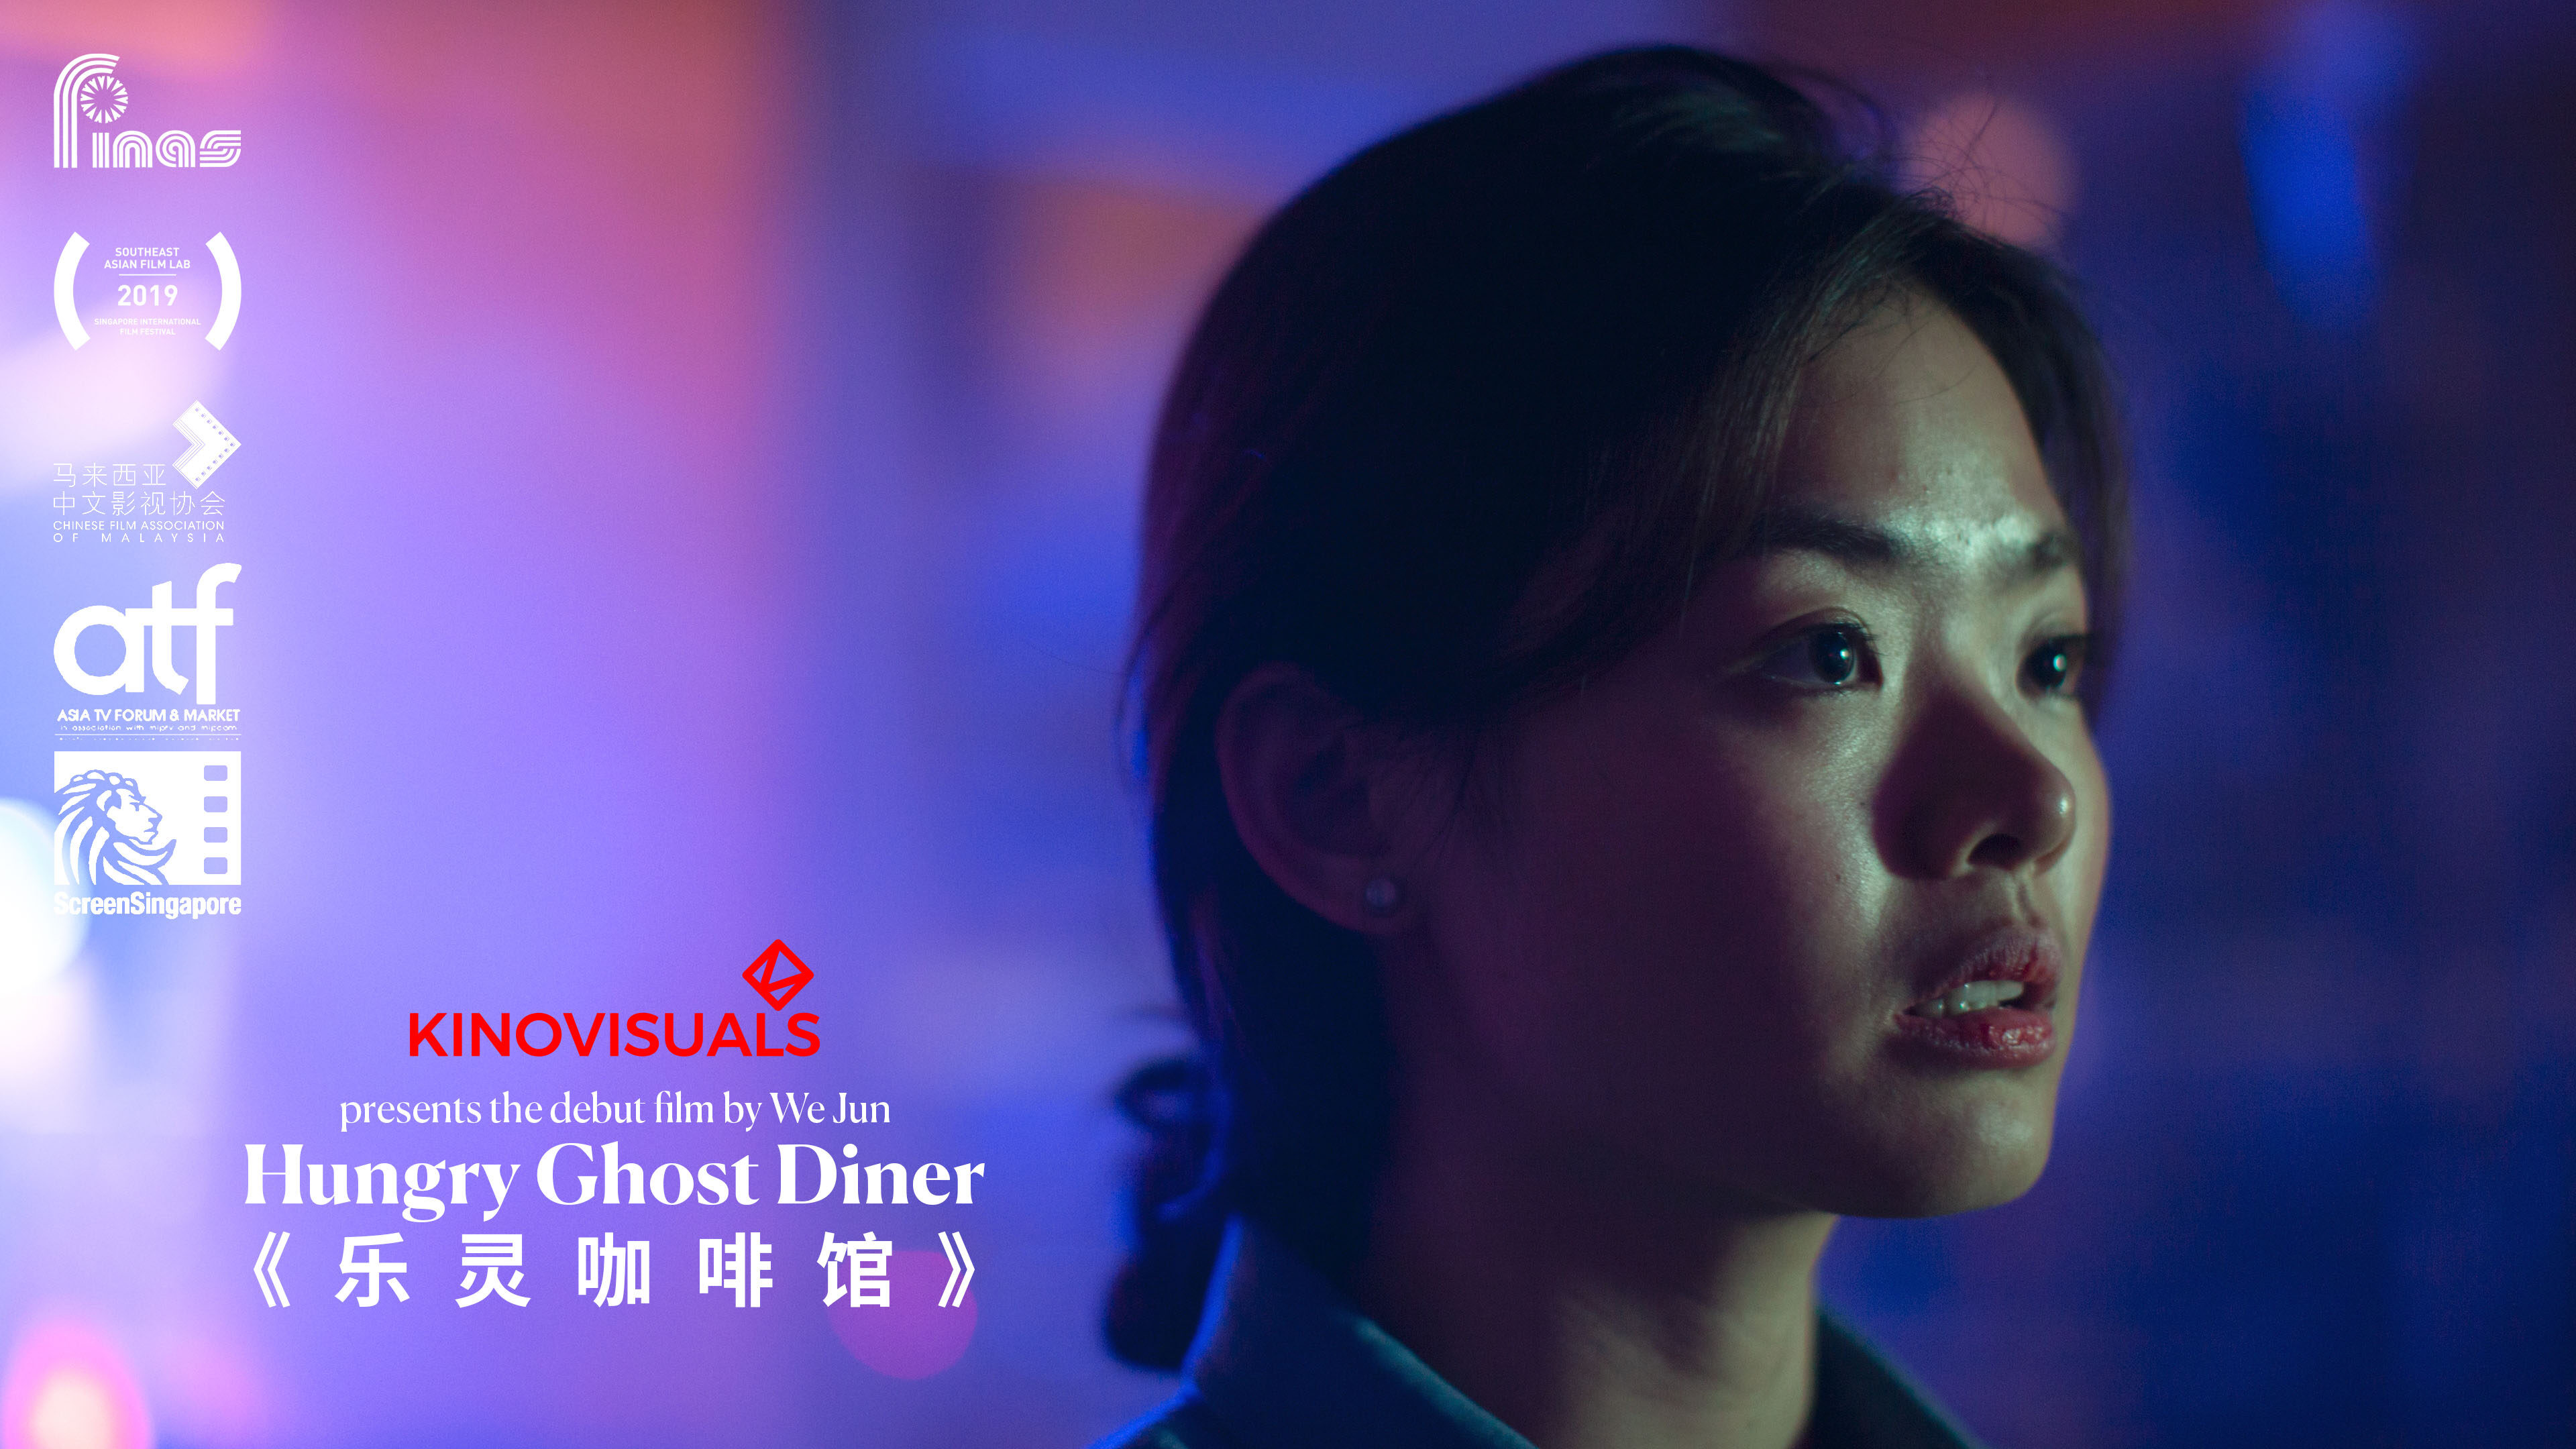 Hungry Ghost Diner by We Jun